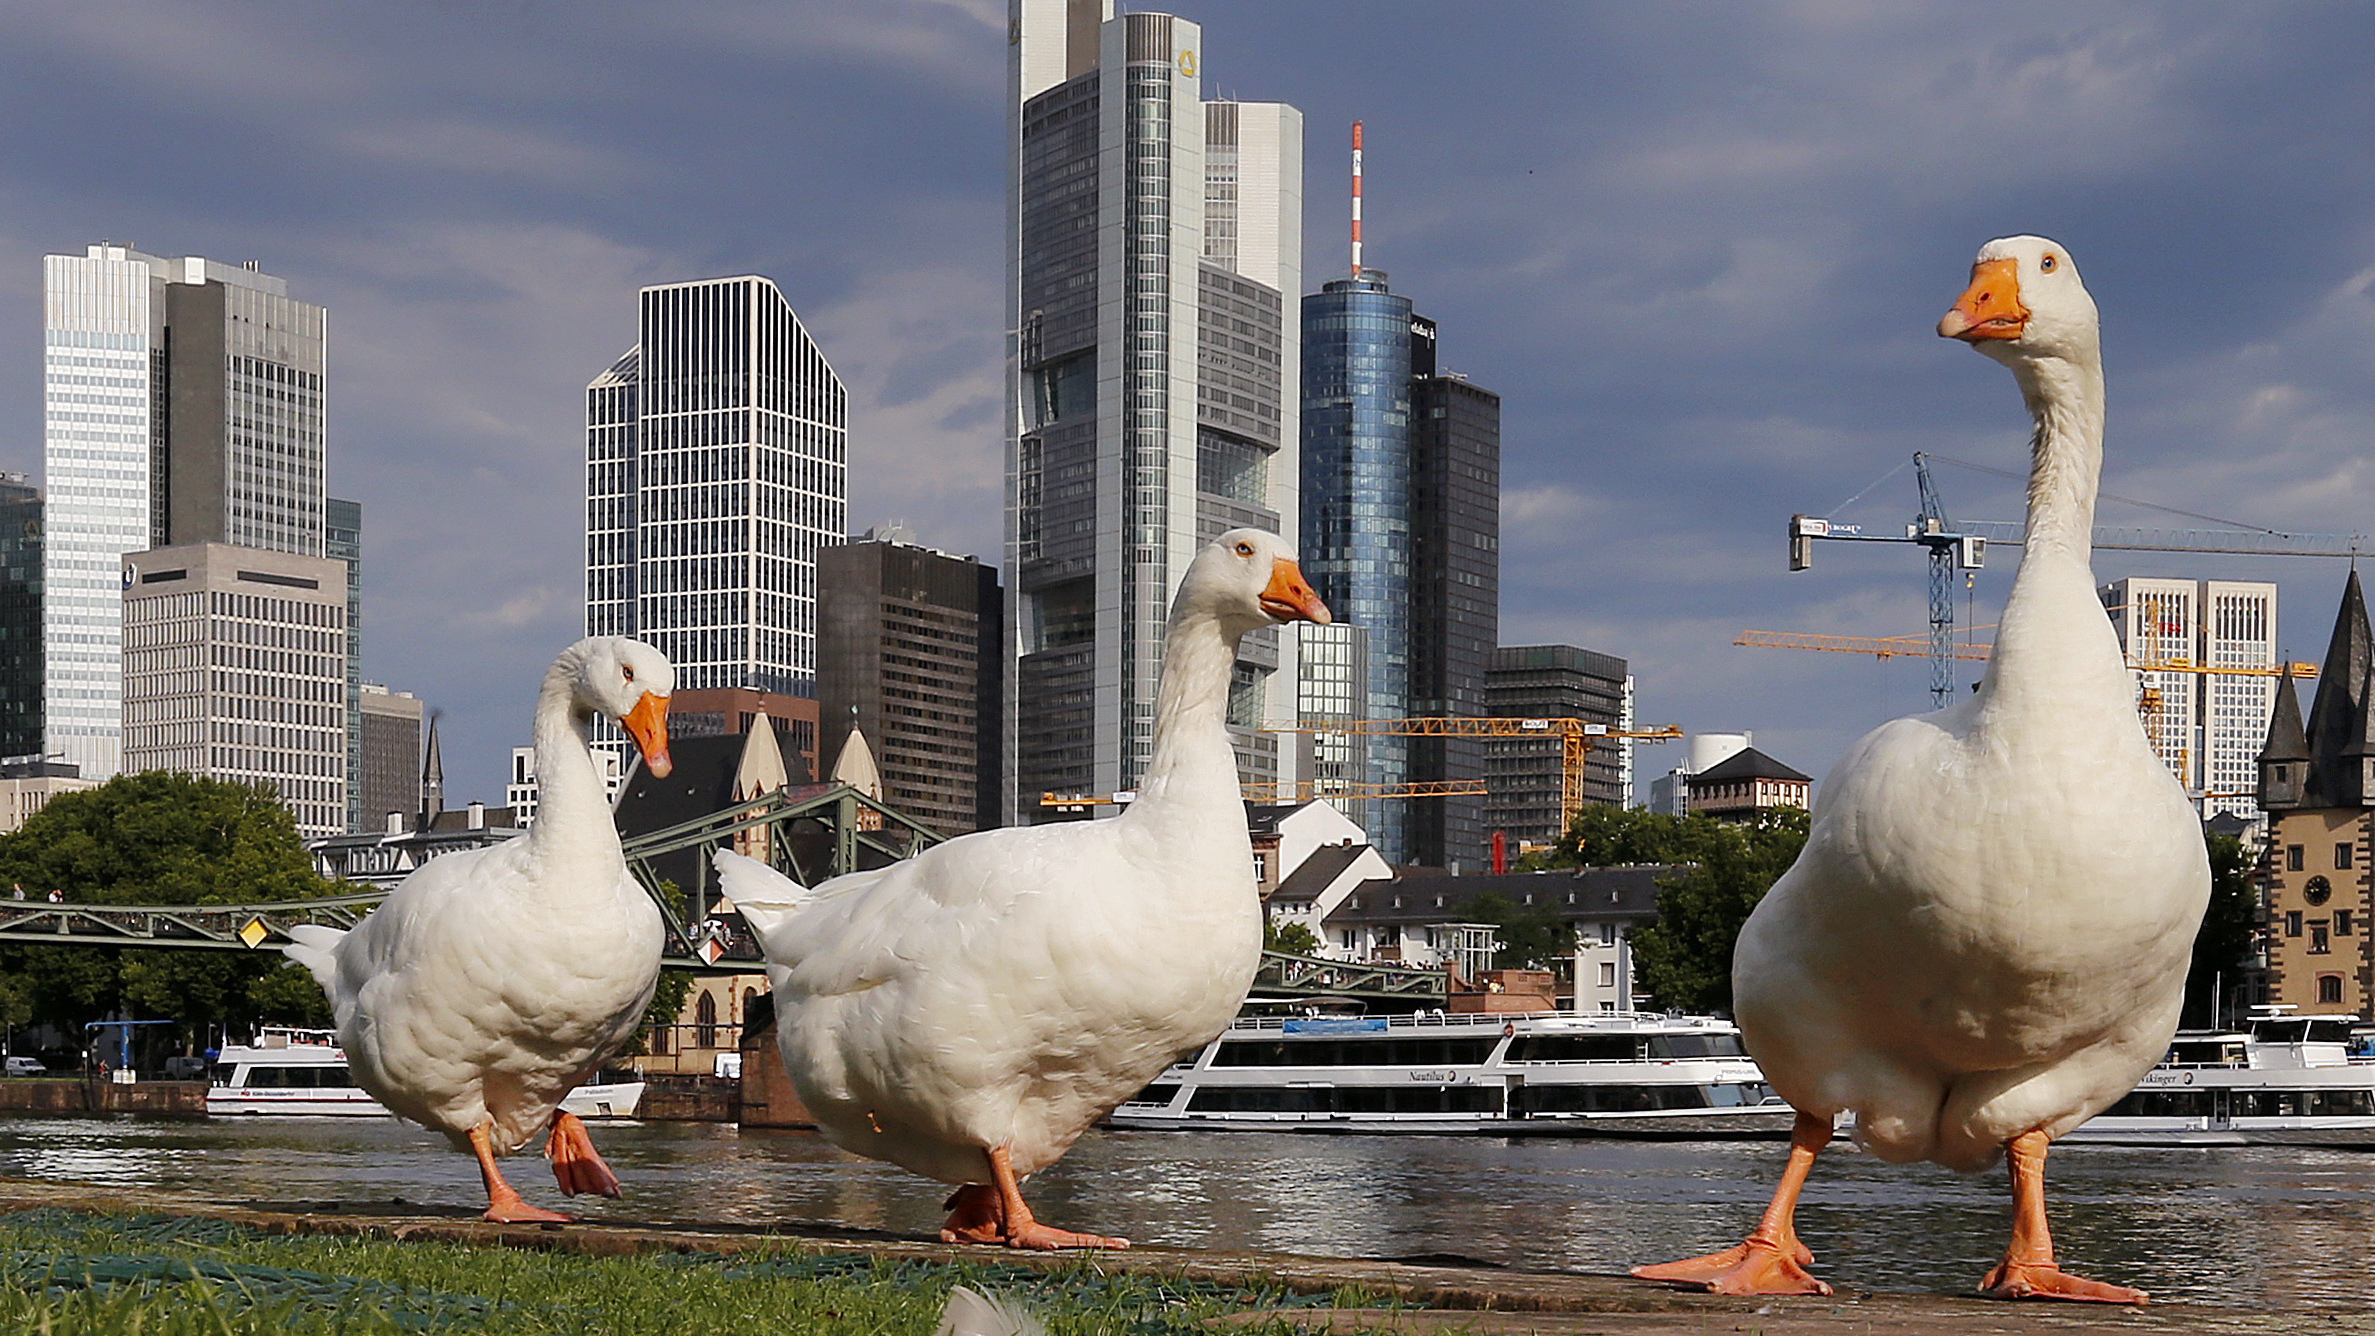 Three big white geese stand on a way near the river Main in Frankfurt, Germany, Tuesday, Aug. 1, 2017.